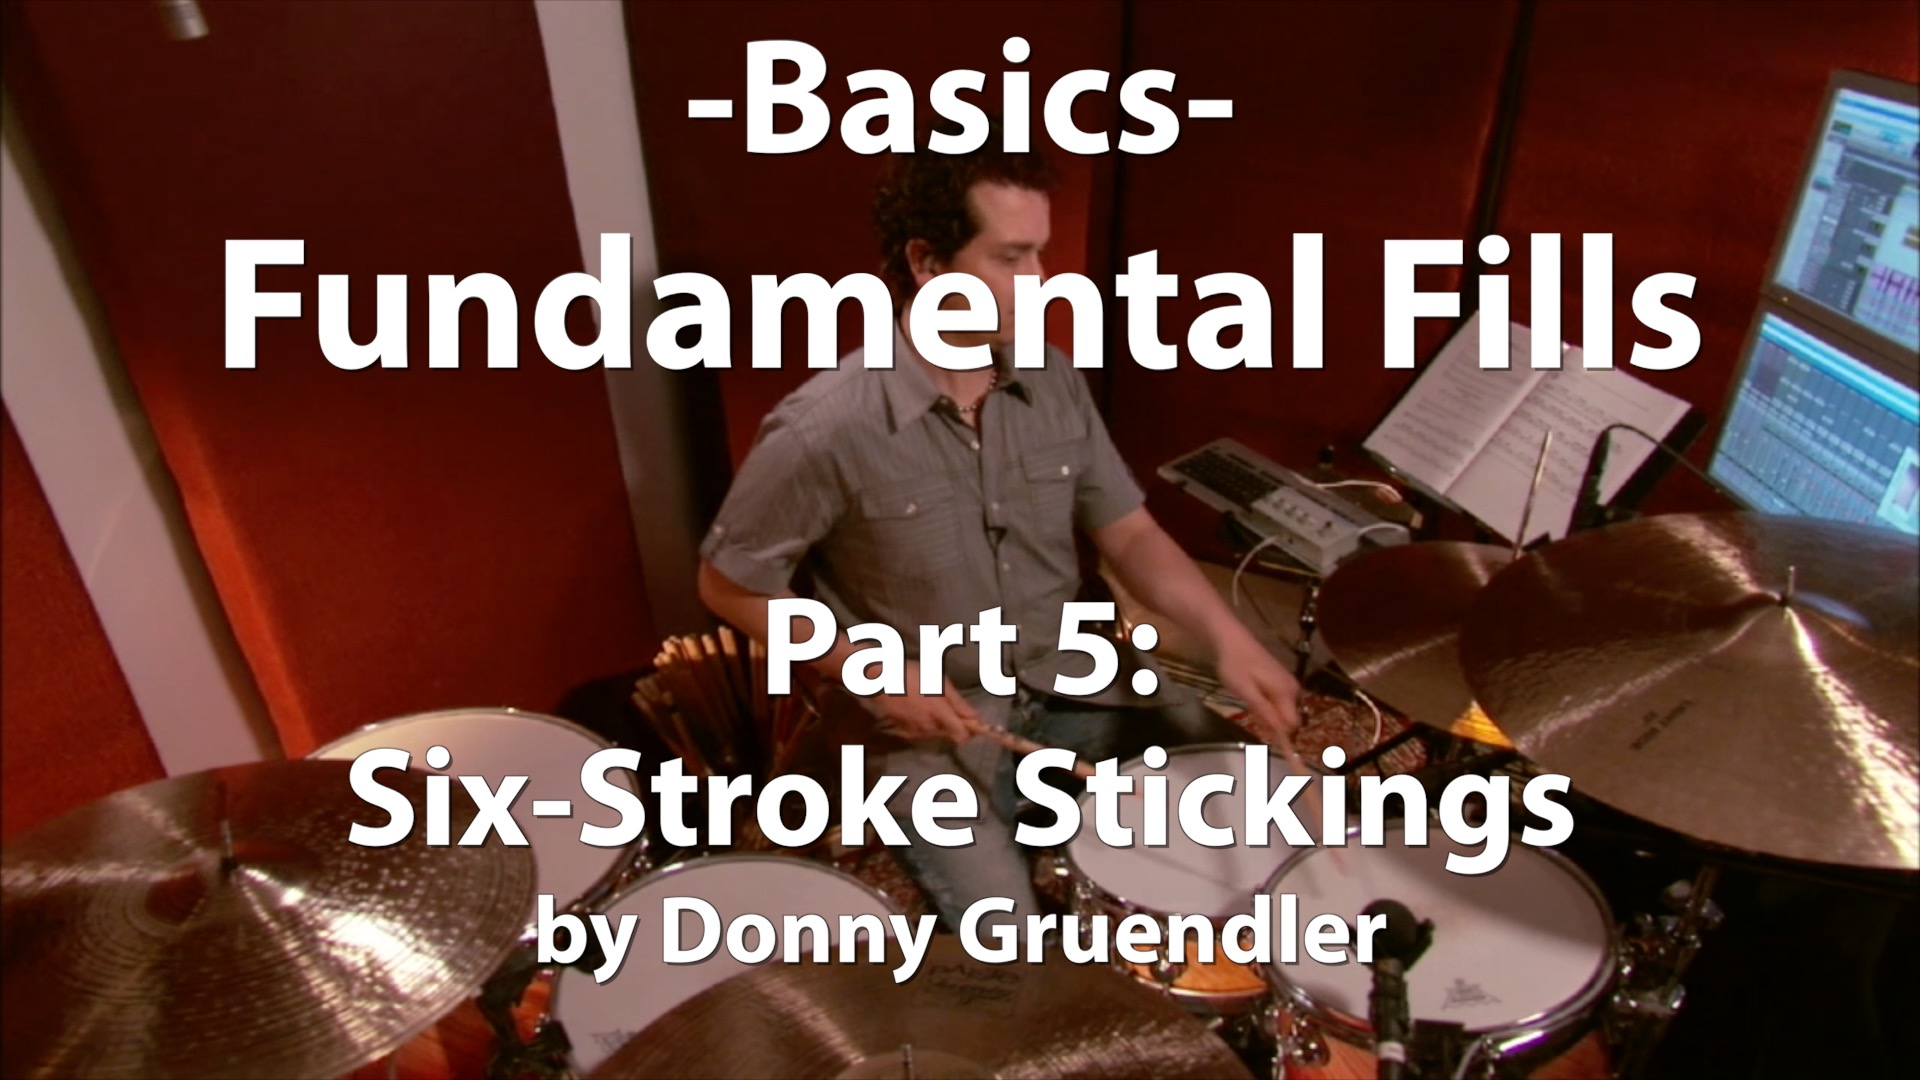 Basics Fundamental Fills Part 5 Six-Stroke Stickings